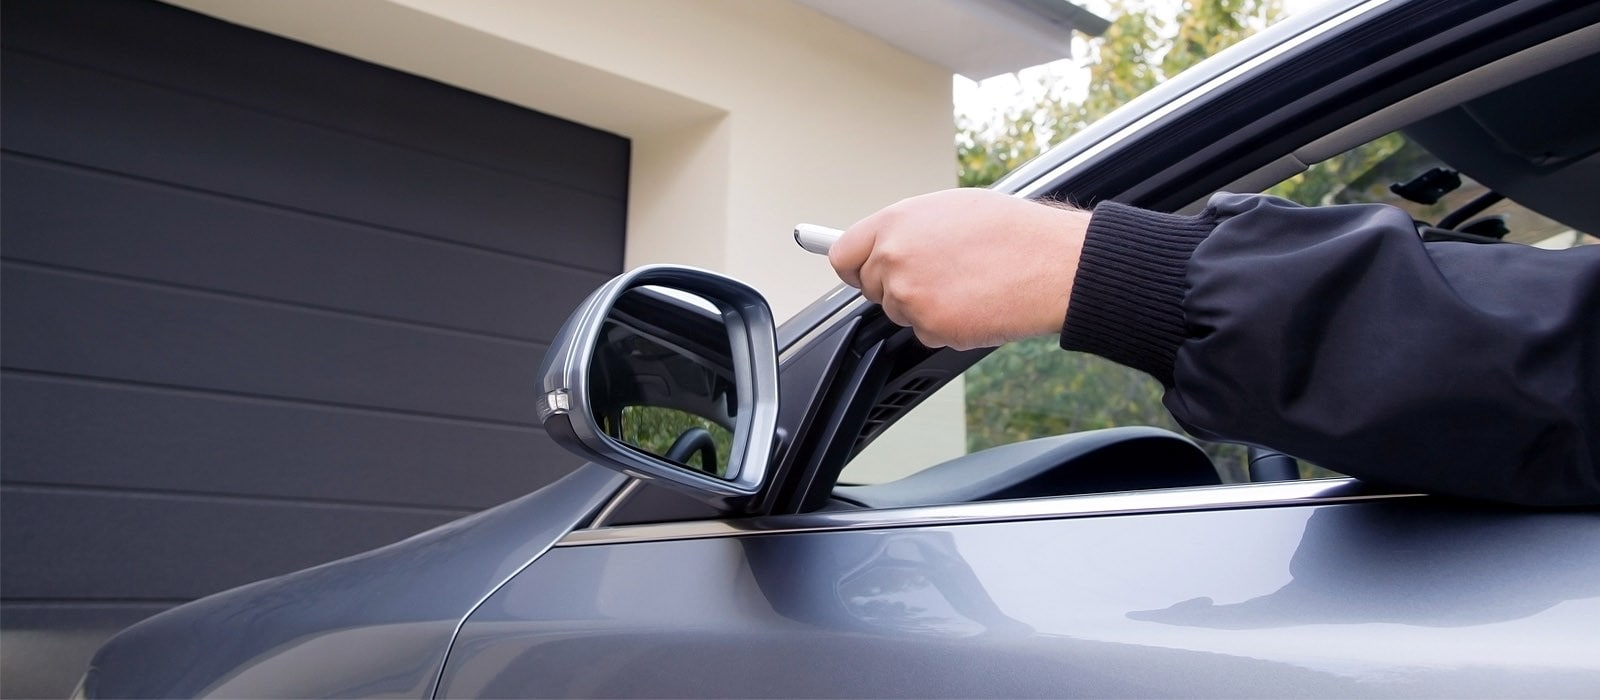 Top Ranked Garage Door Opener Repair & Installation. Flat Panel Interior Doors. Bathroom Closet Doors. Liftmaster Door Opener. Tuff Shed Garage. 4 Door Dodge Ram. Sliding Barn Doors With Glass. Door Pediments. Cabinet Door Router Bits